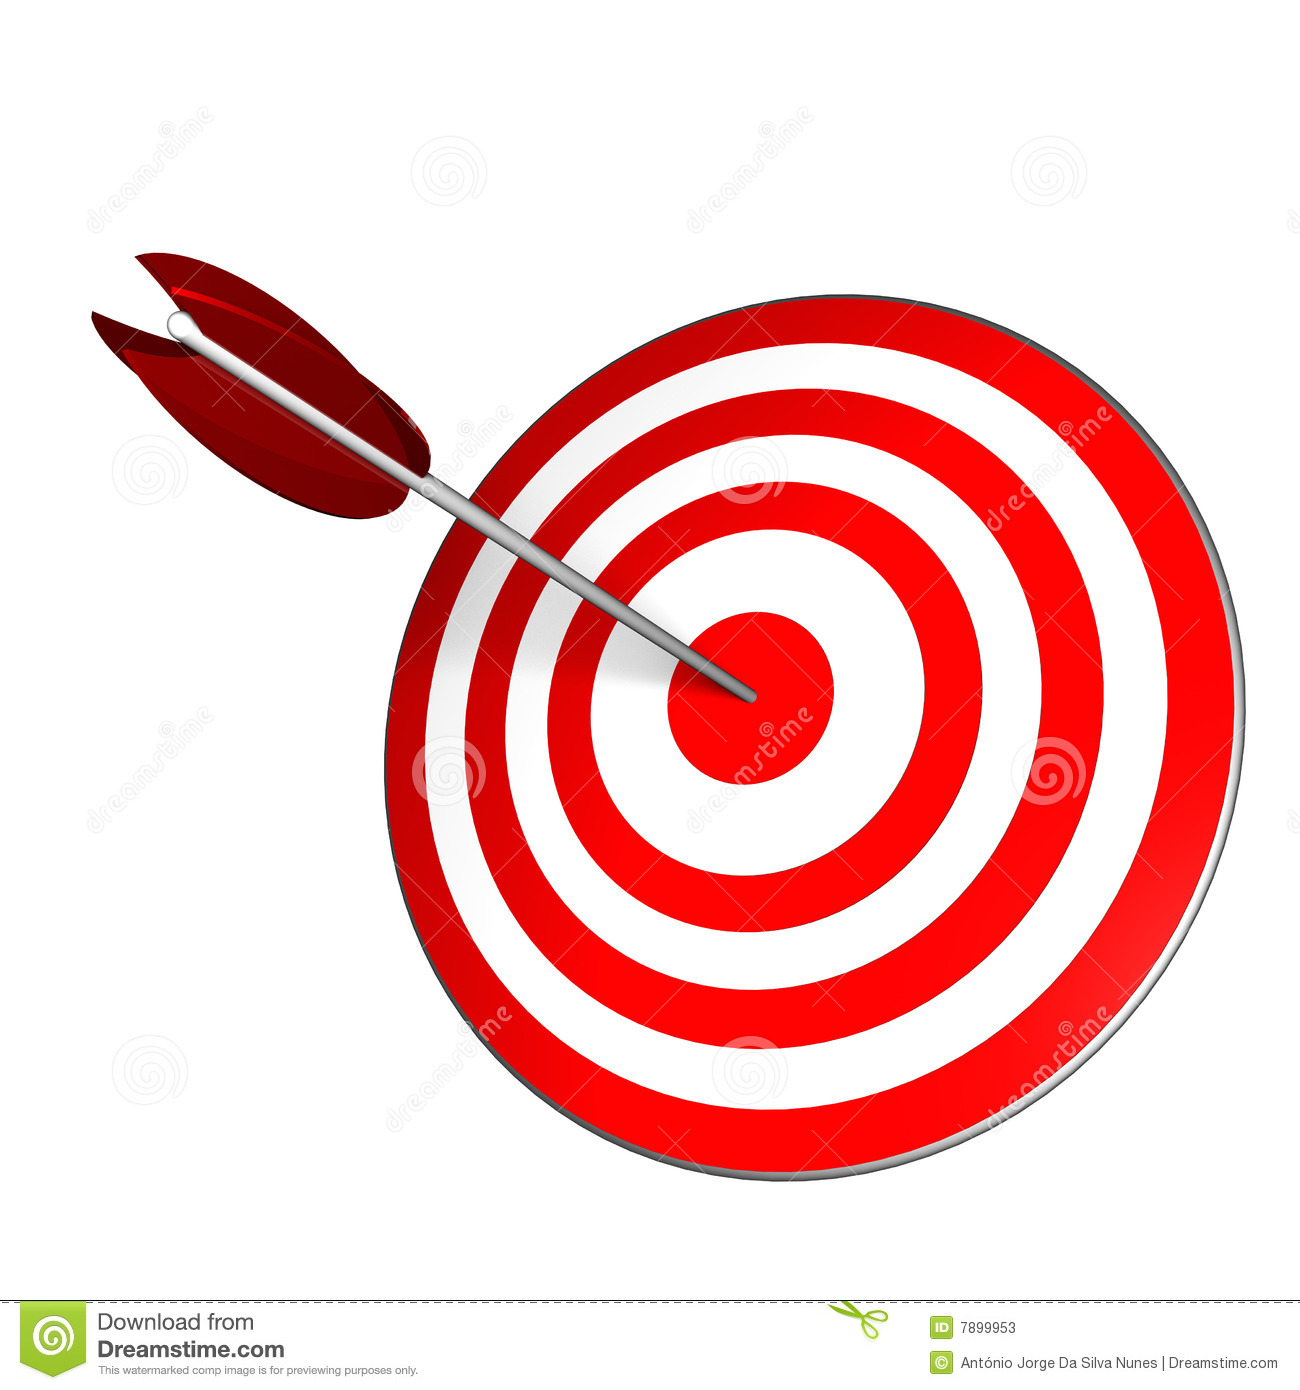 Target with arrow clipart graphic free download Bullseye arrow clipart - ClipartFest graphic free download